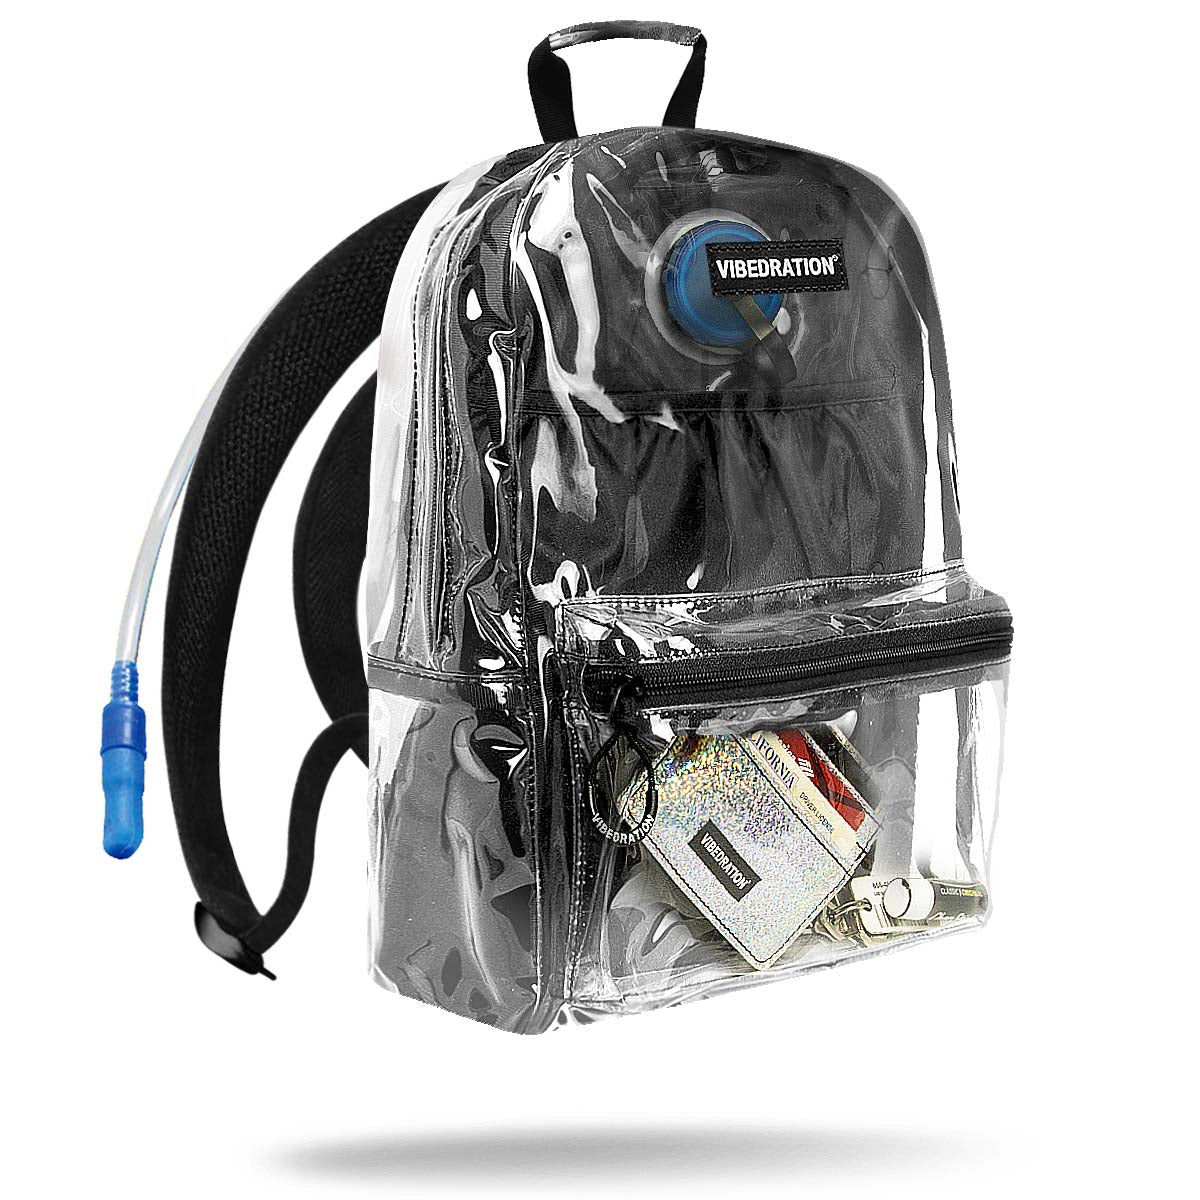 Clear Hydration Pack for Tailgating